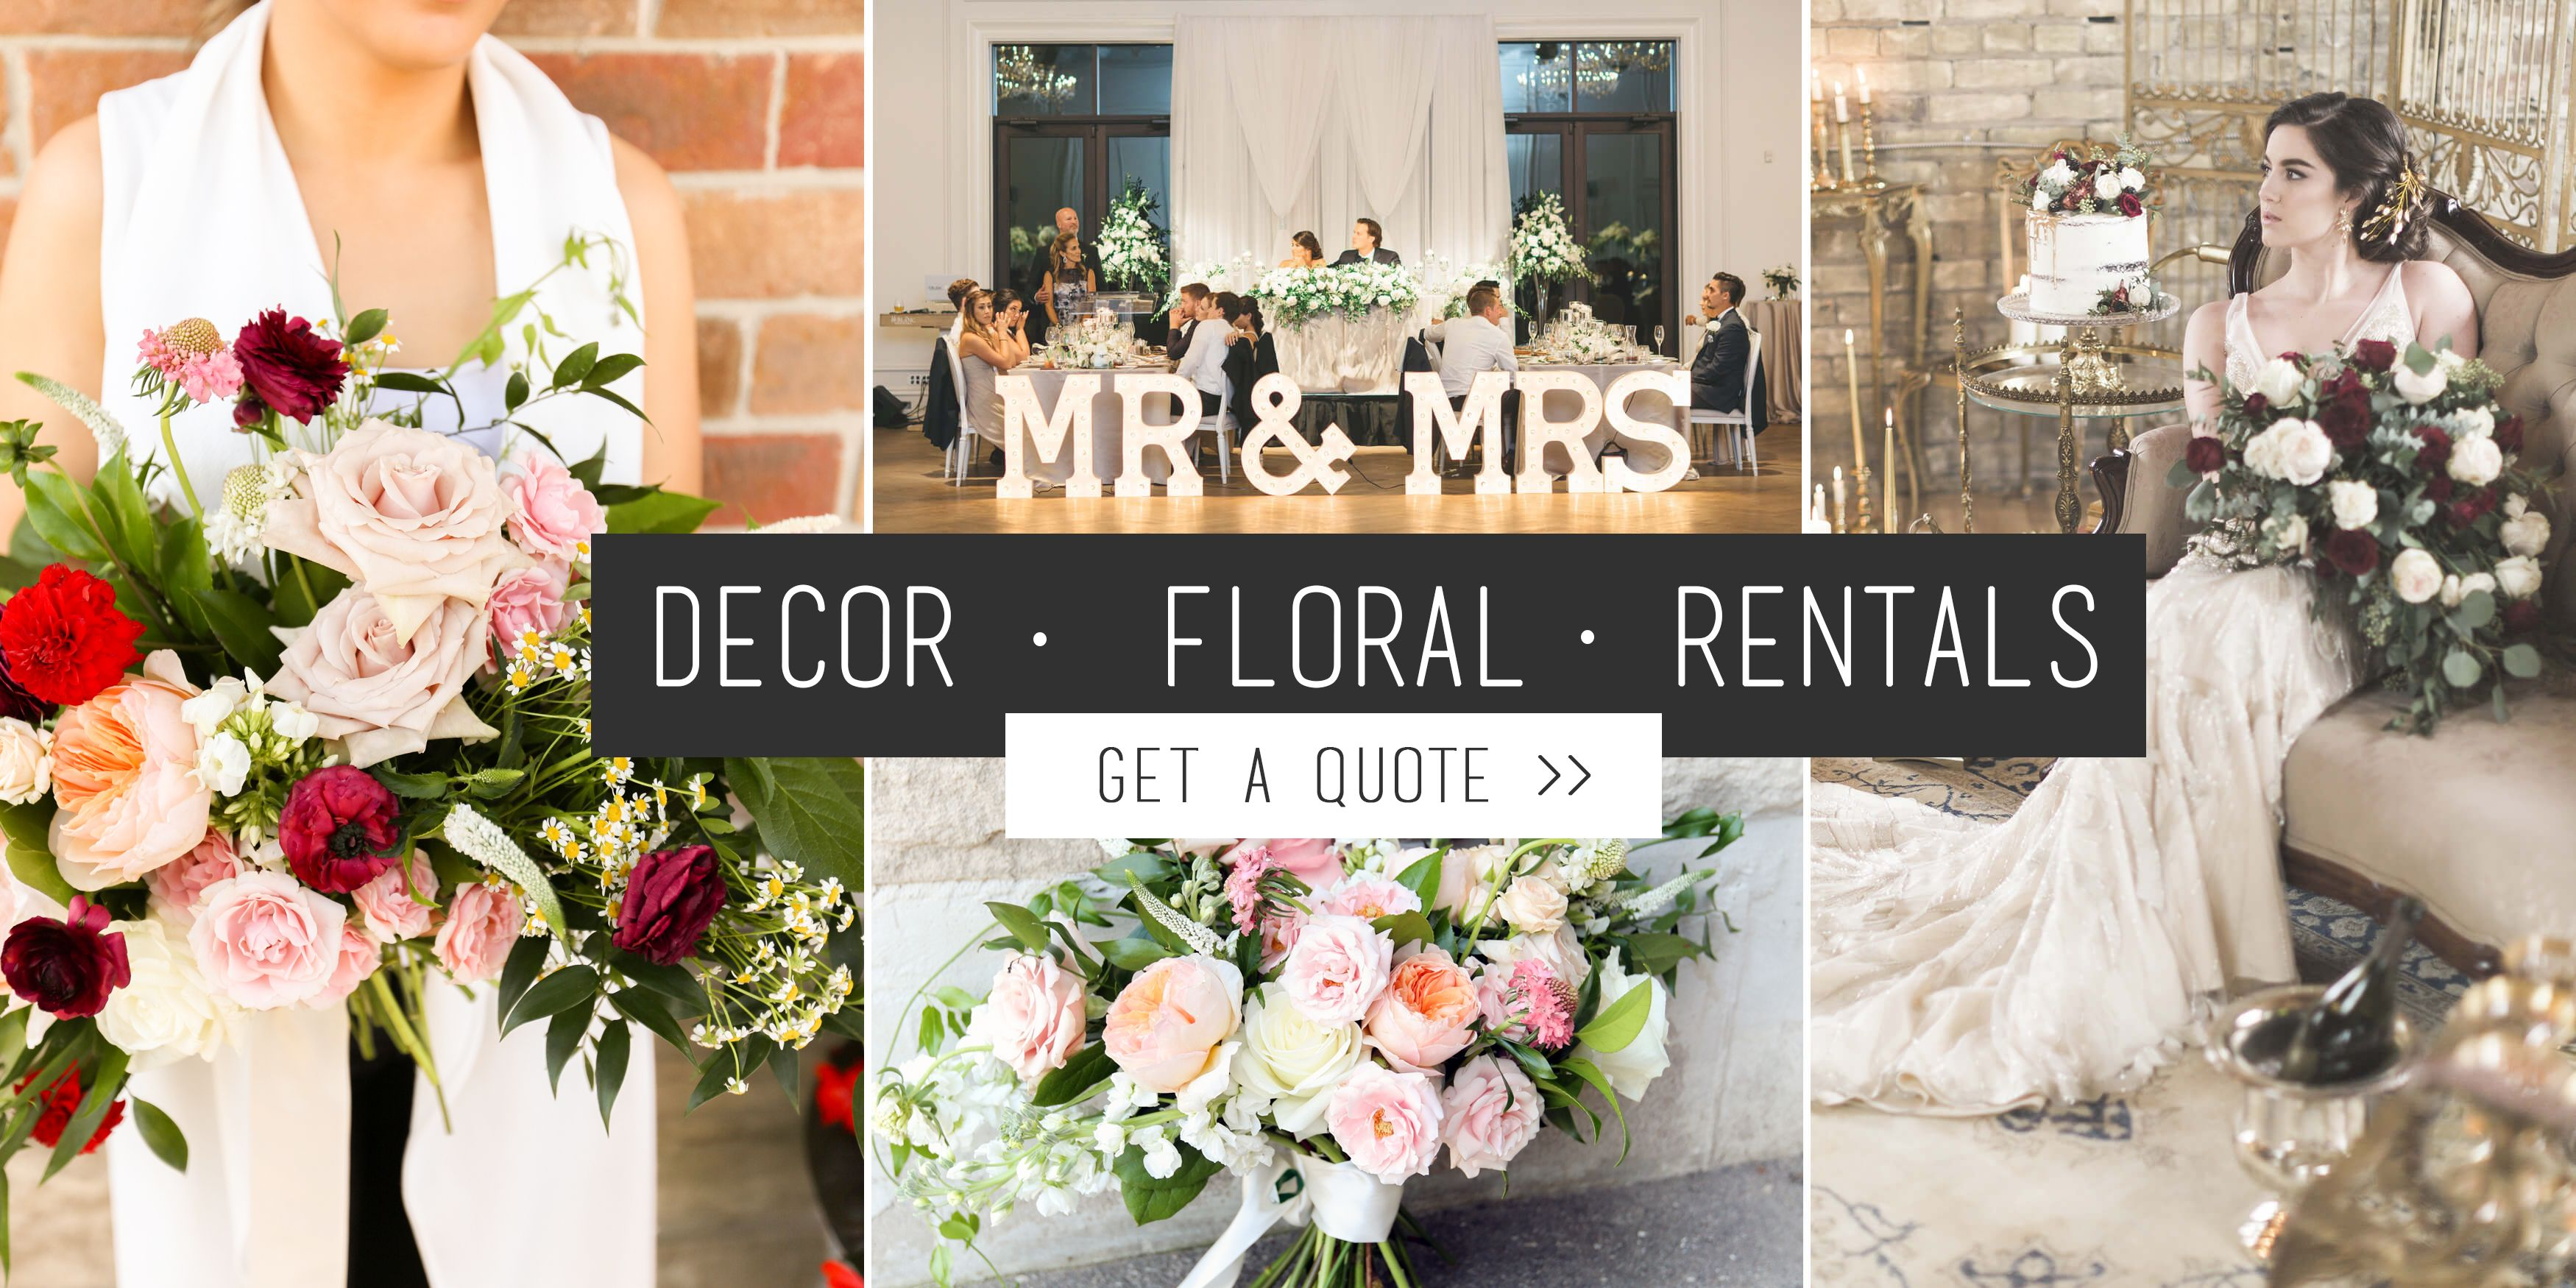 Toronto Florist Decorator Event Rentals Events Weddings Gta Wedding Rentals Decor Wedding Decorations Wedding Table Decorations Centerpieces